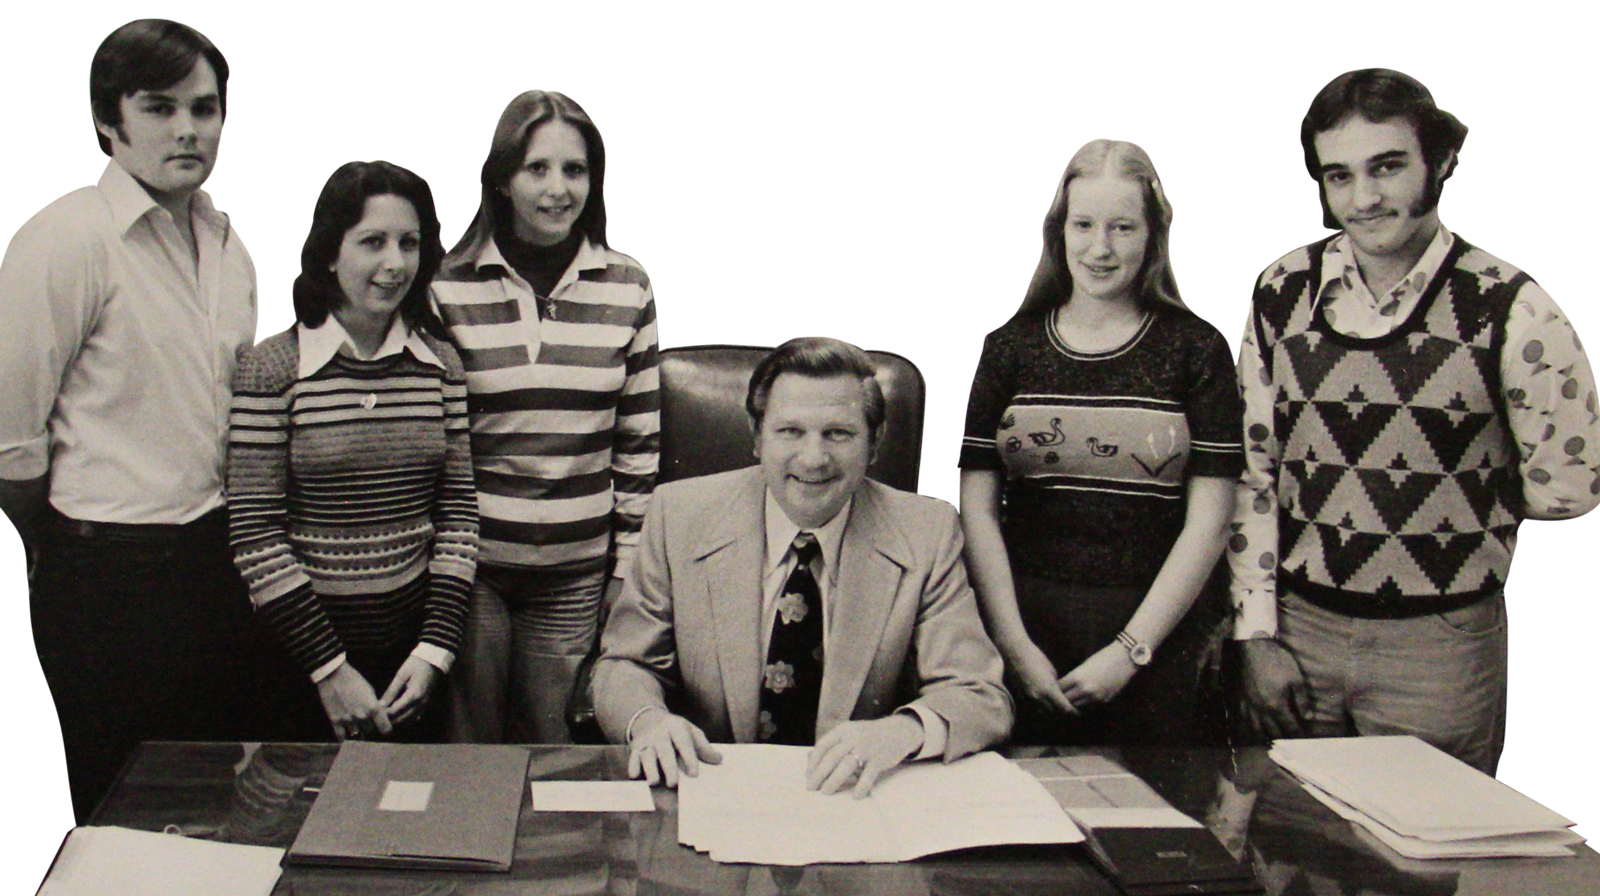 photo of a young Nancy Sims as a political staffer standing with a group of colleagues